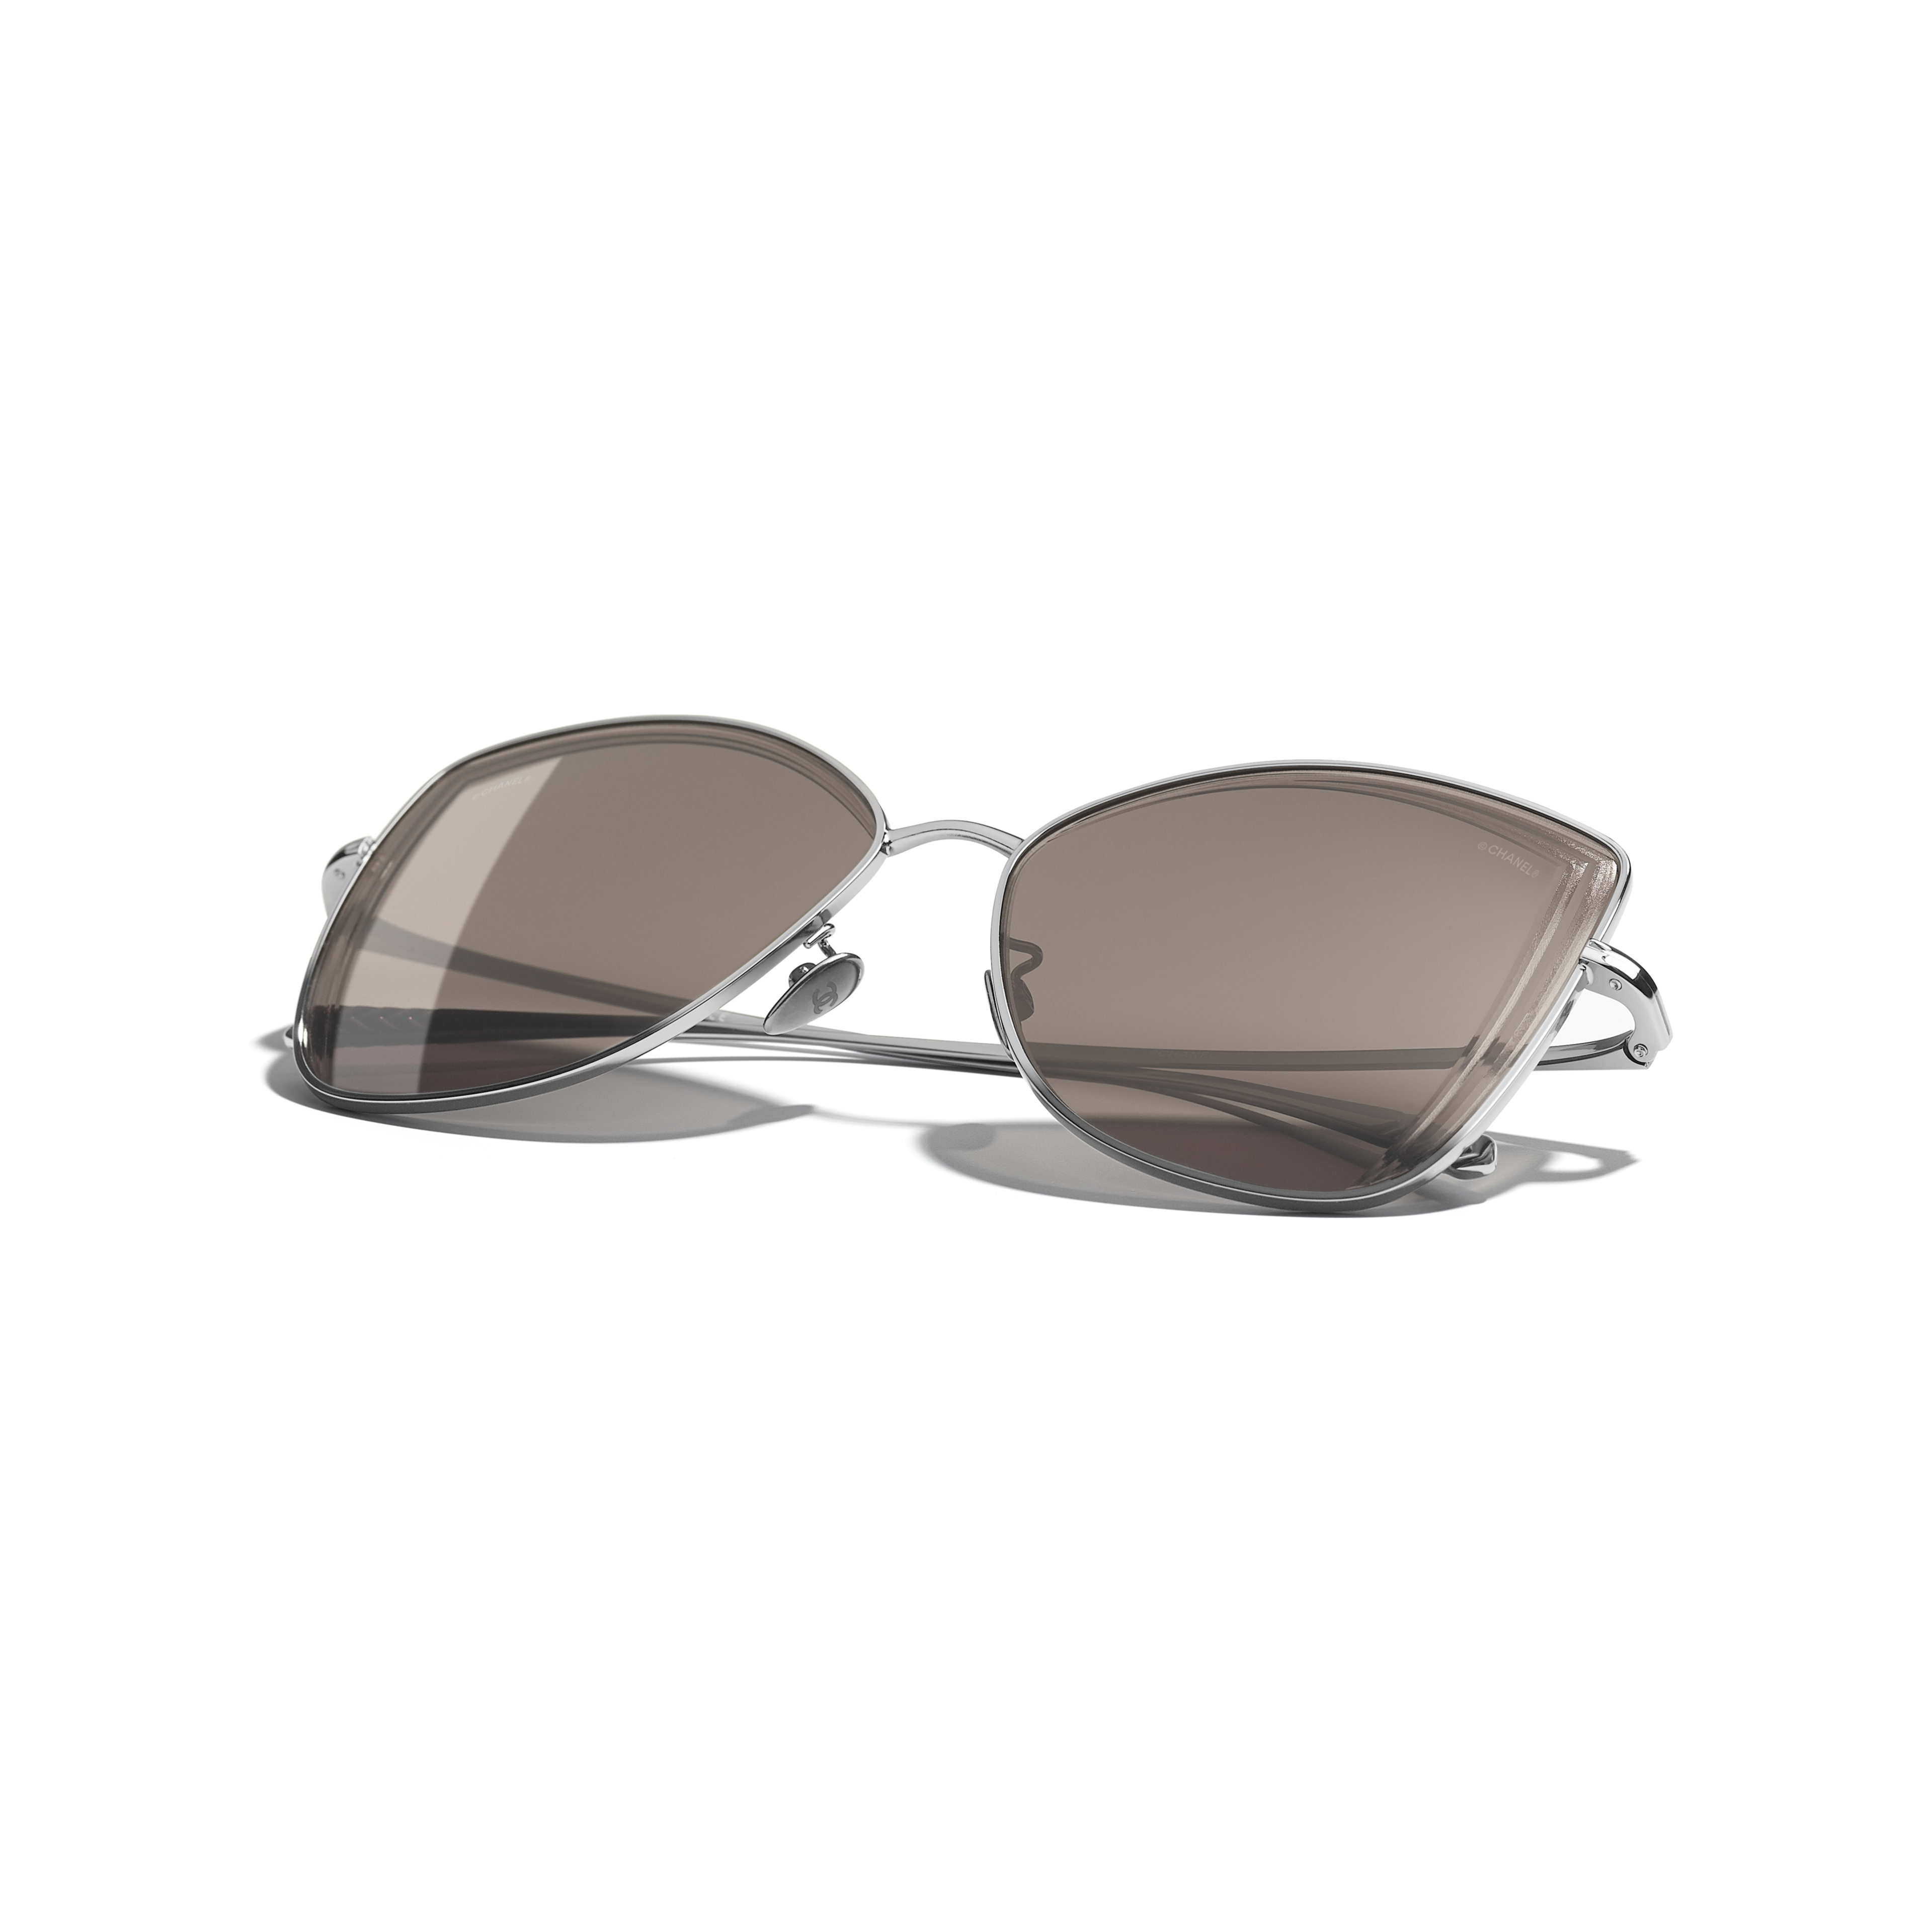 Butterfly Sunglasses - Dark Silver - Metal - Extra view - see full sized version